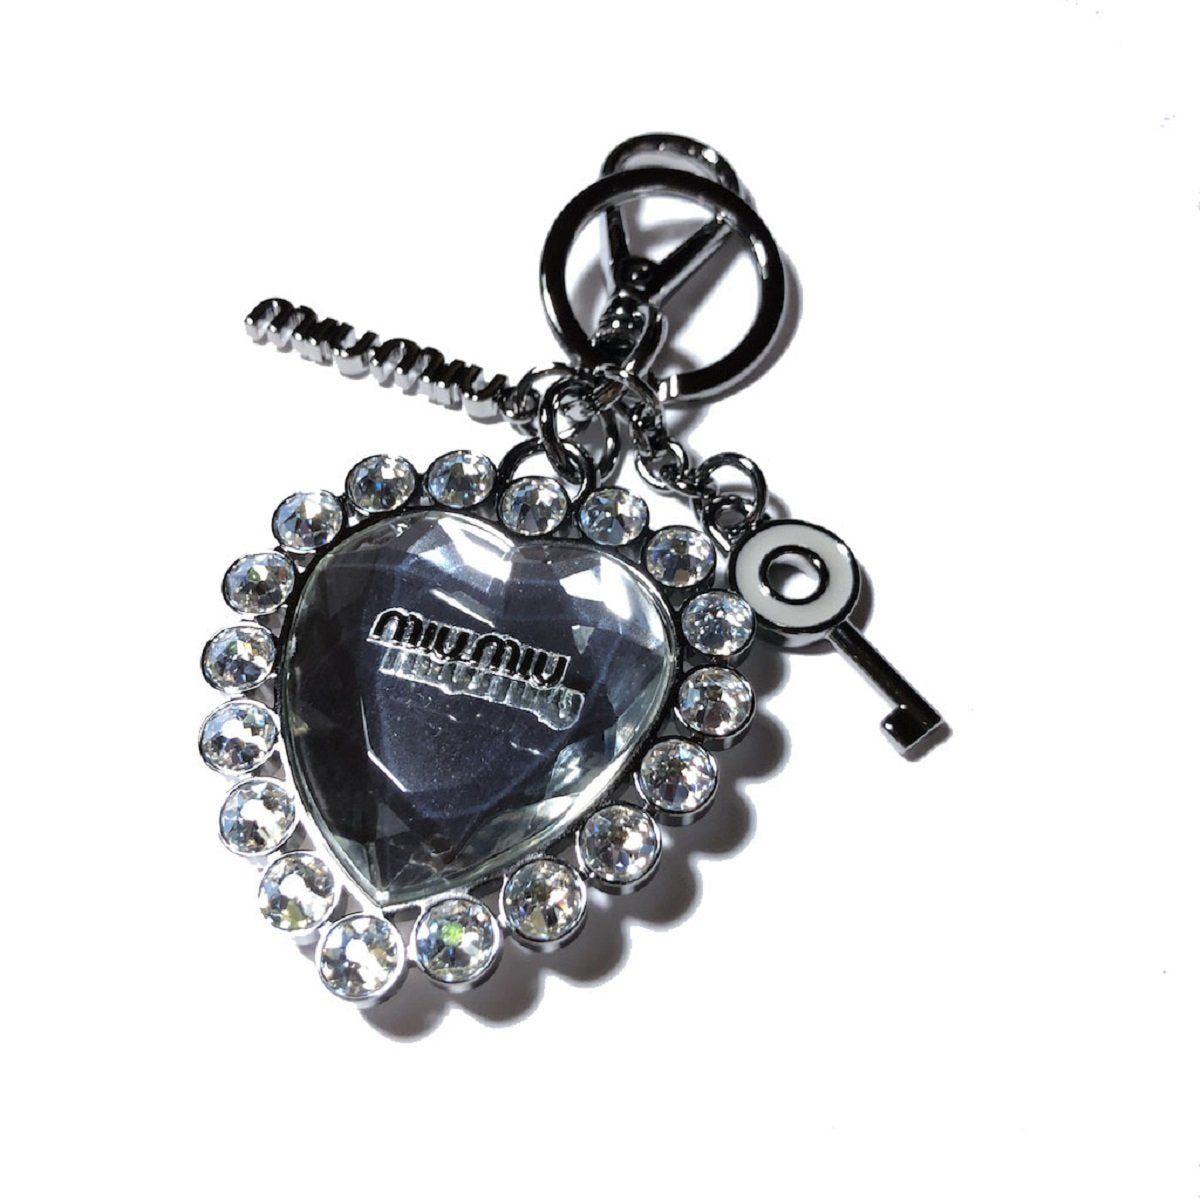 Miu Miu Trick Metallo Ghiaccio Crystal Clear Heart Plex Charm Key Chain 5TM093